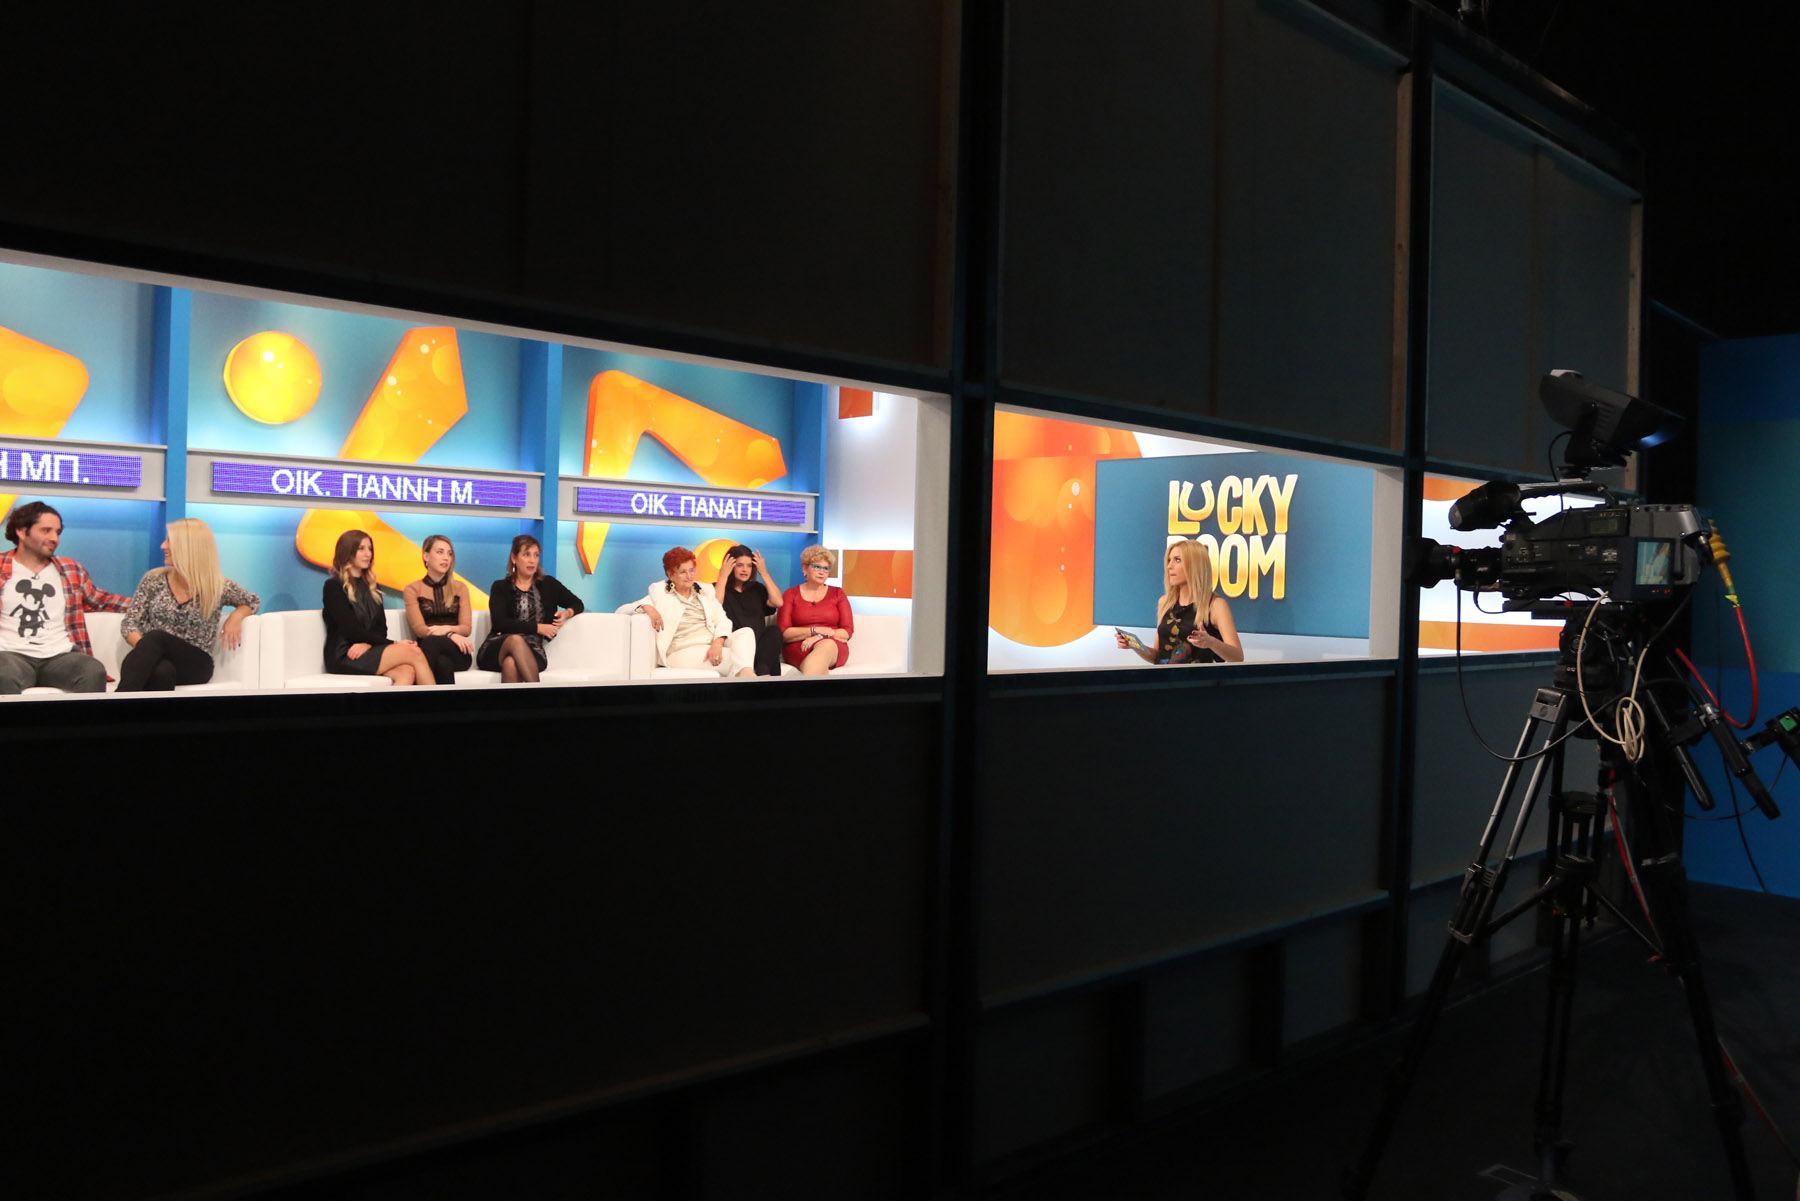 lucky-room-ant1-3